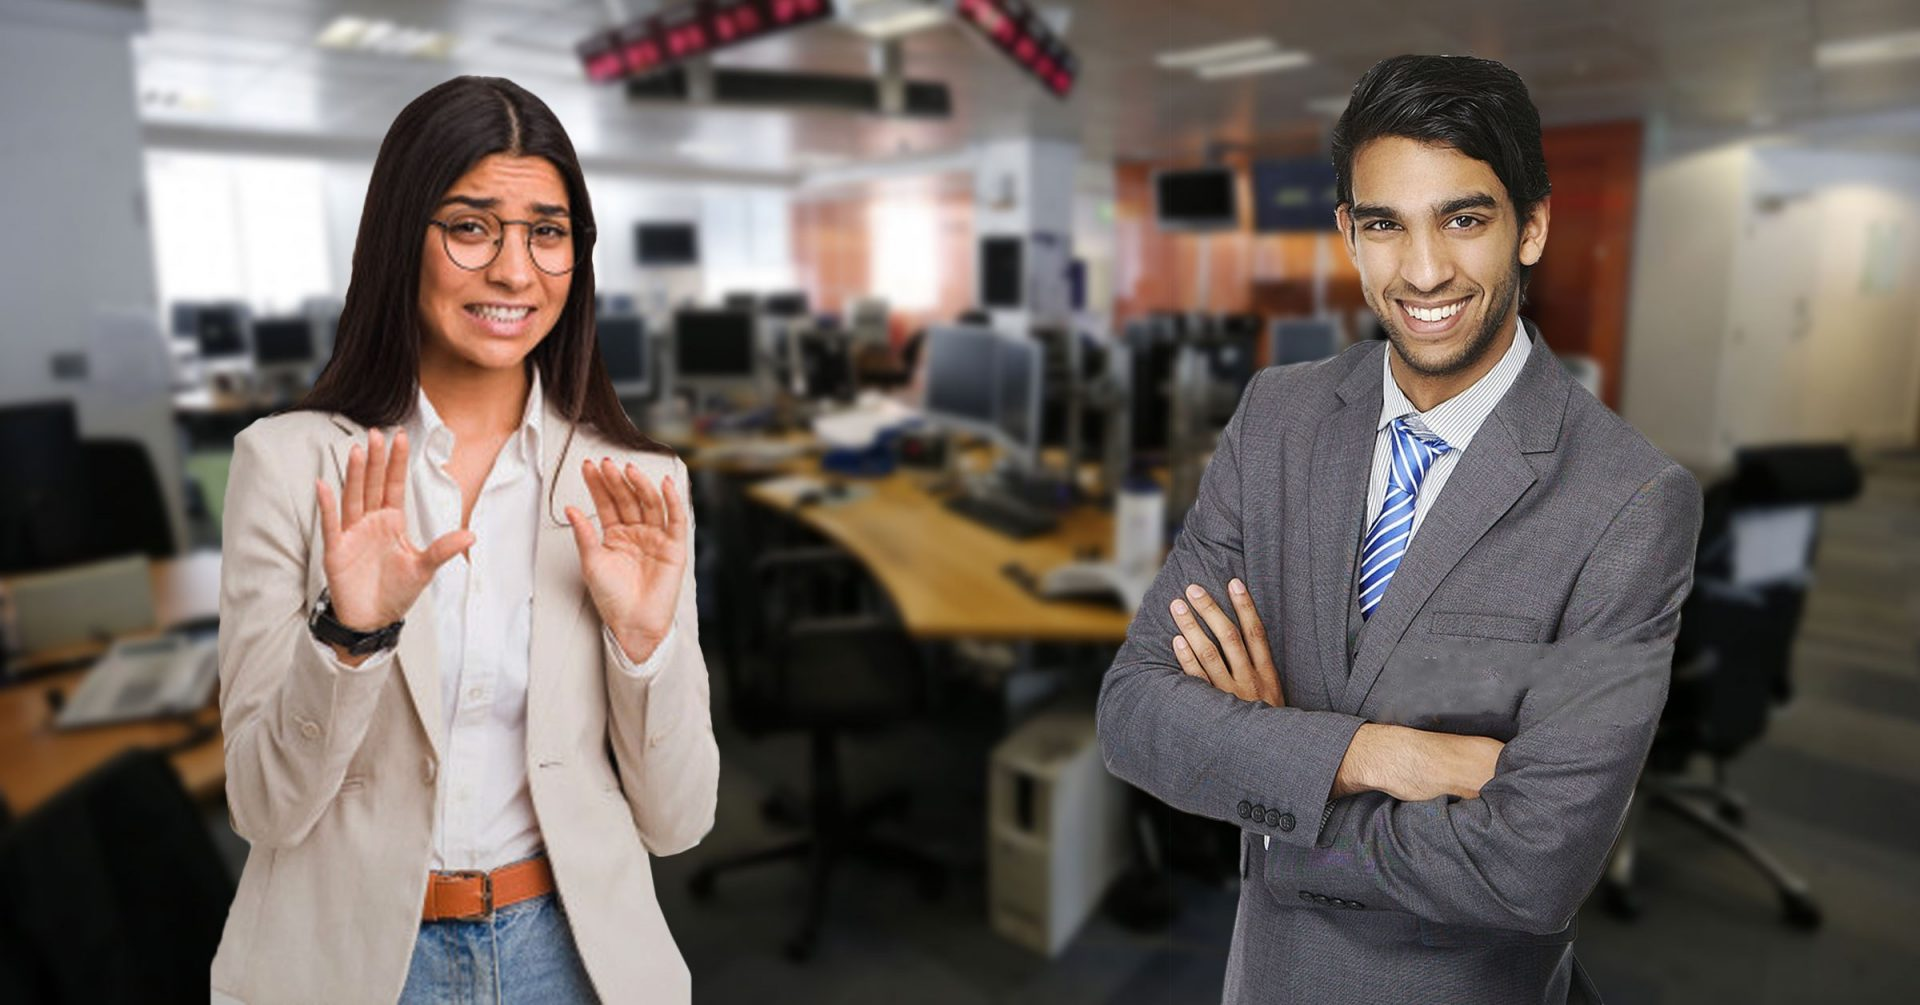 Employees Avoid the HR Department